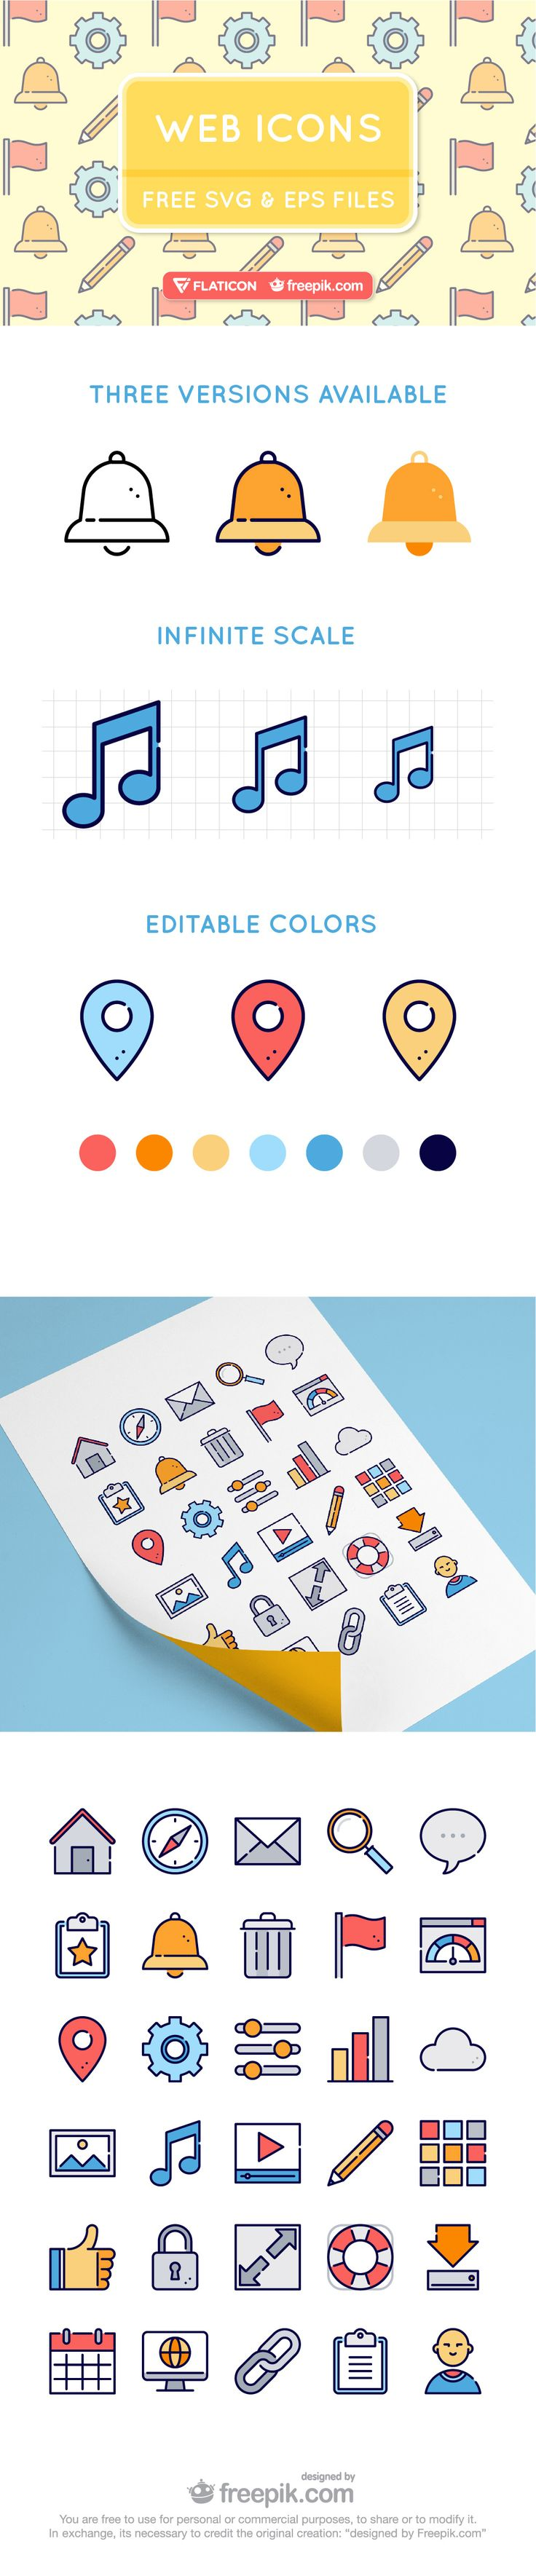 ⬇ Free download: Web Icons Vector #webdesign